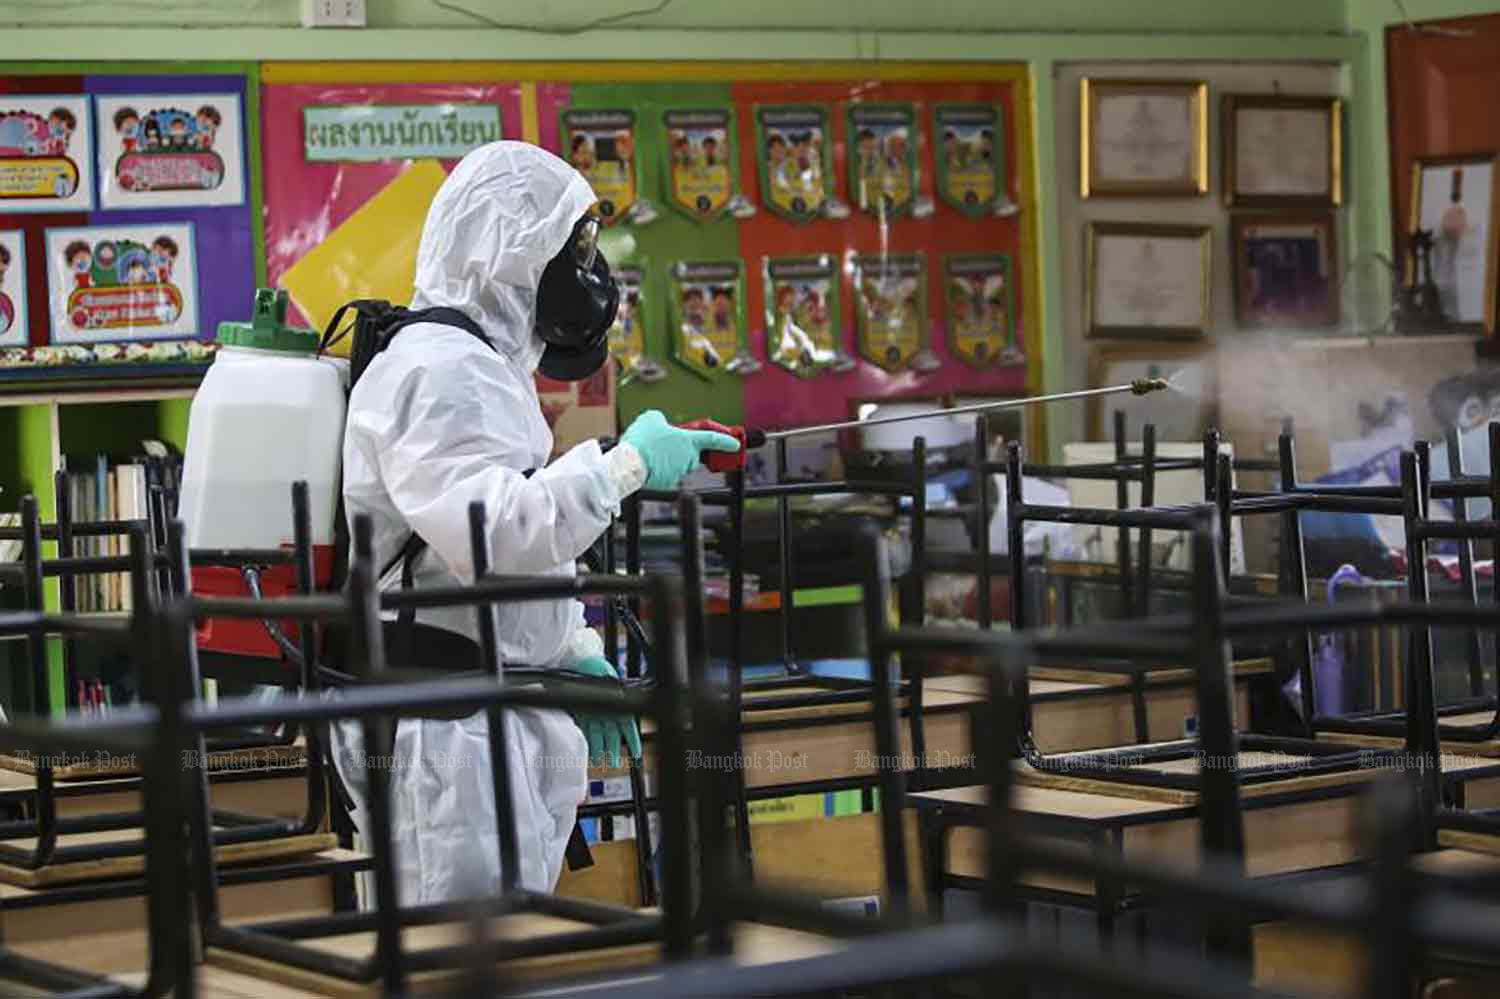 A disease control worker sprays disinfectant at Prachaniwet School in Chatuchak district, Bangkok, on Friday. Schools will reopen on Monday when many businesses and other activities will also resume to varying degree. (Photo: Pattarapong Chatpatarasill)